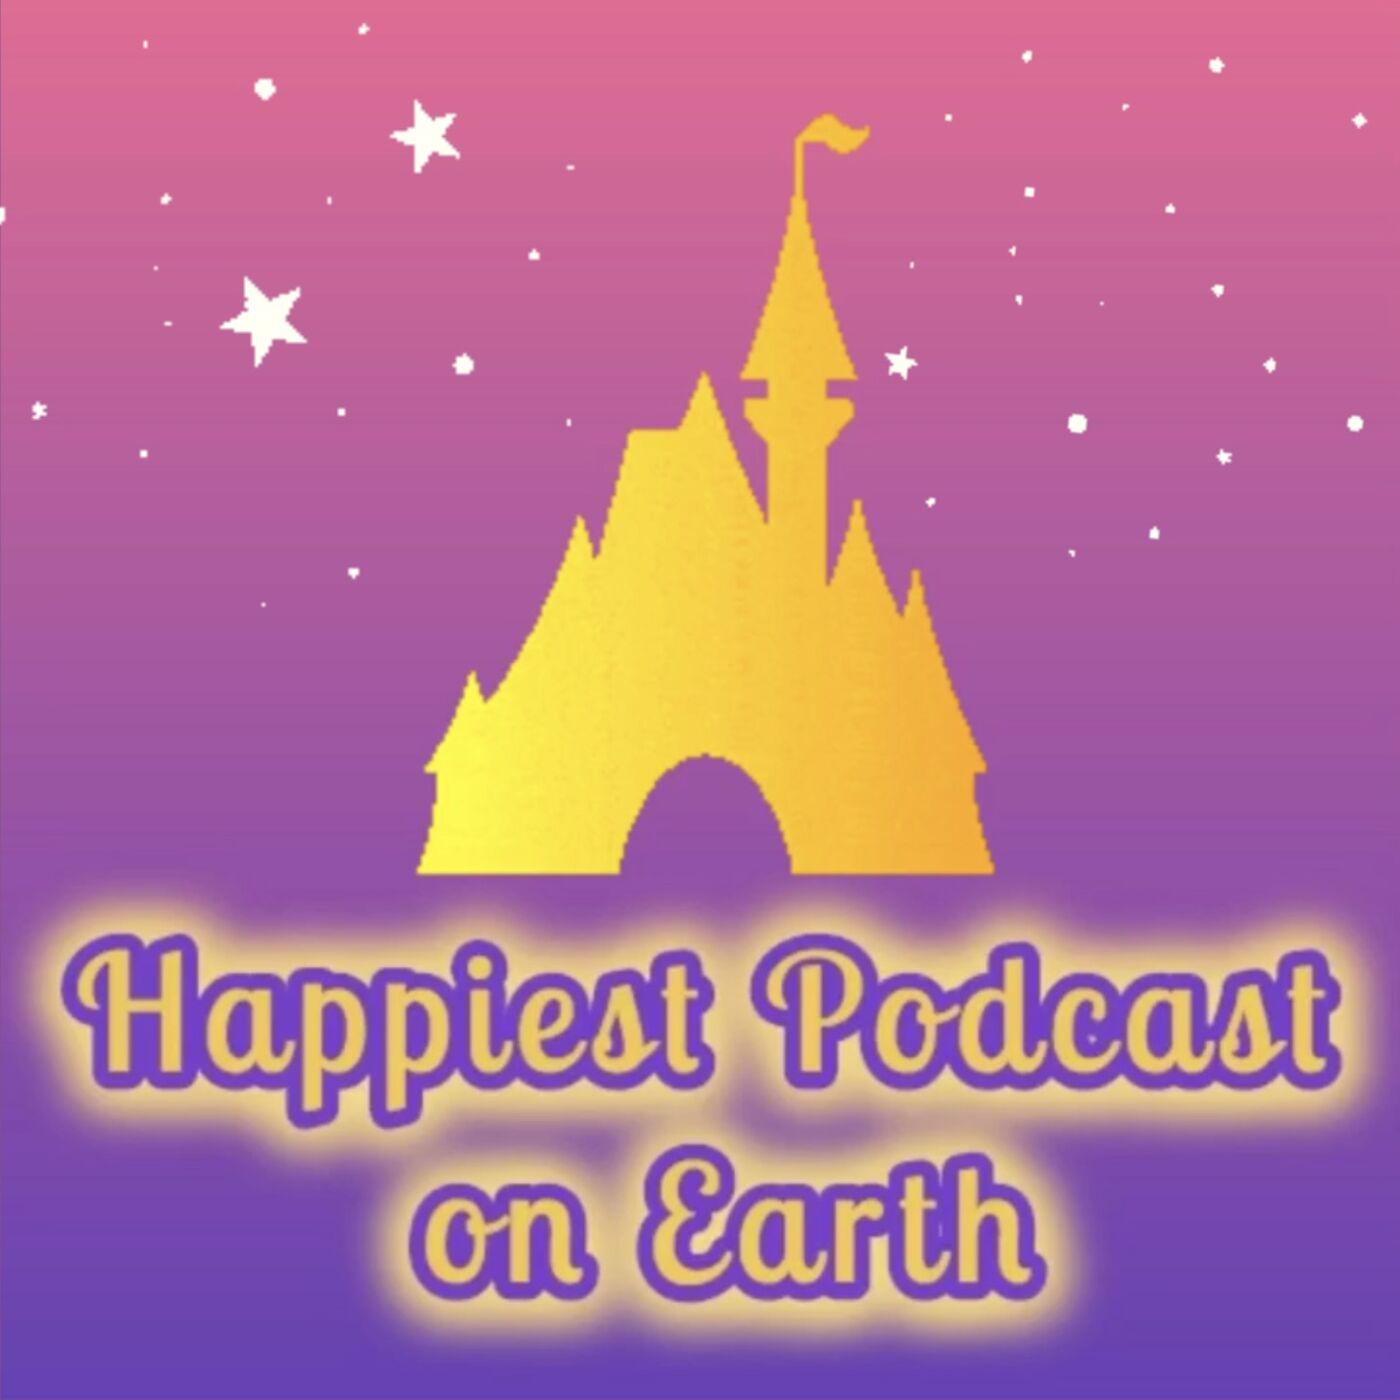 Happiest Podcast On Earth - Disney | Listen Notes